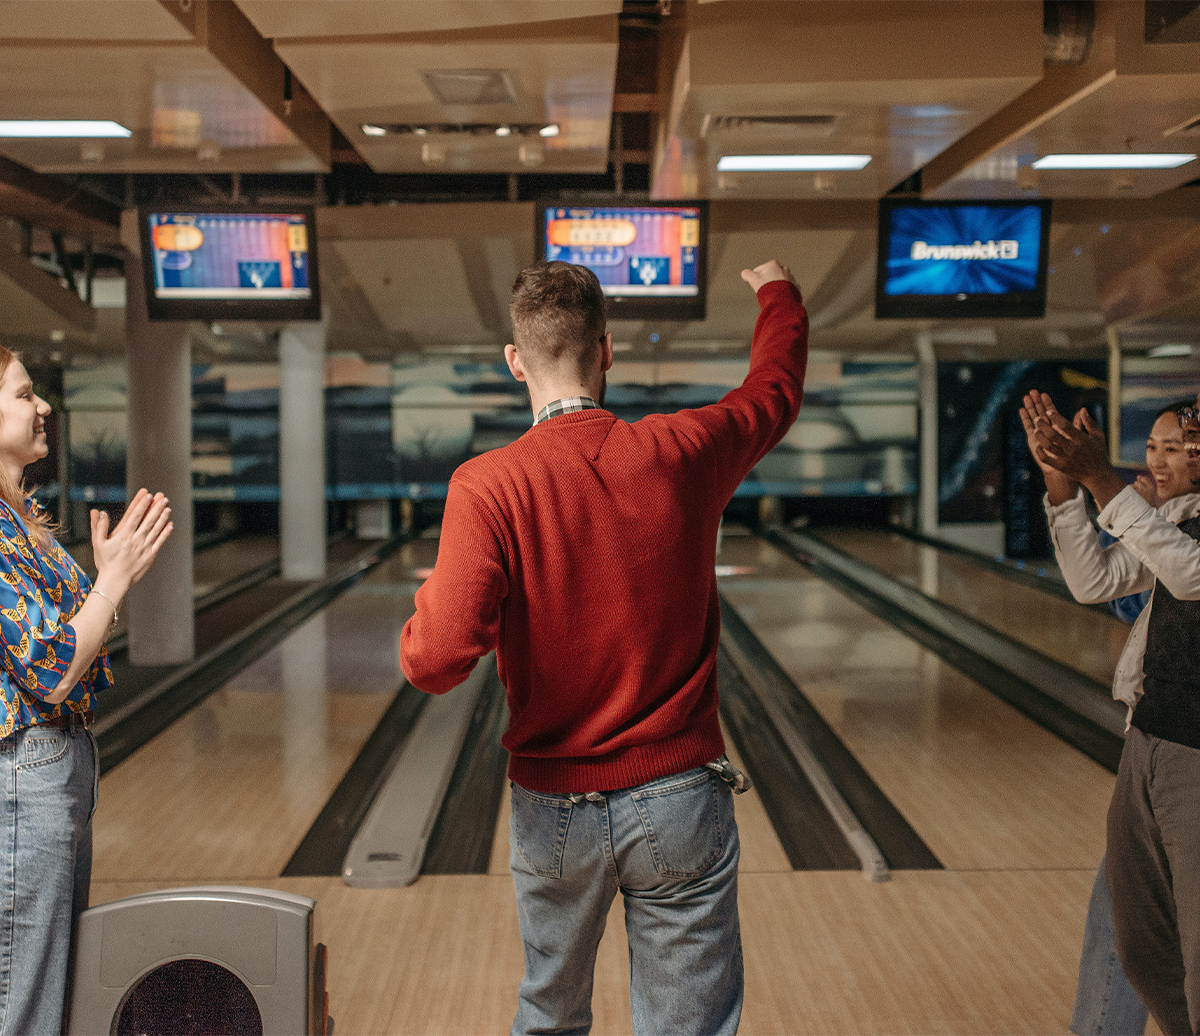 Young Adult bowling with friends celebrating